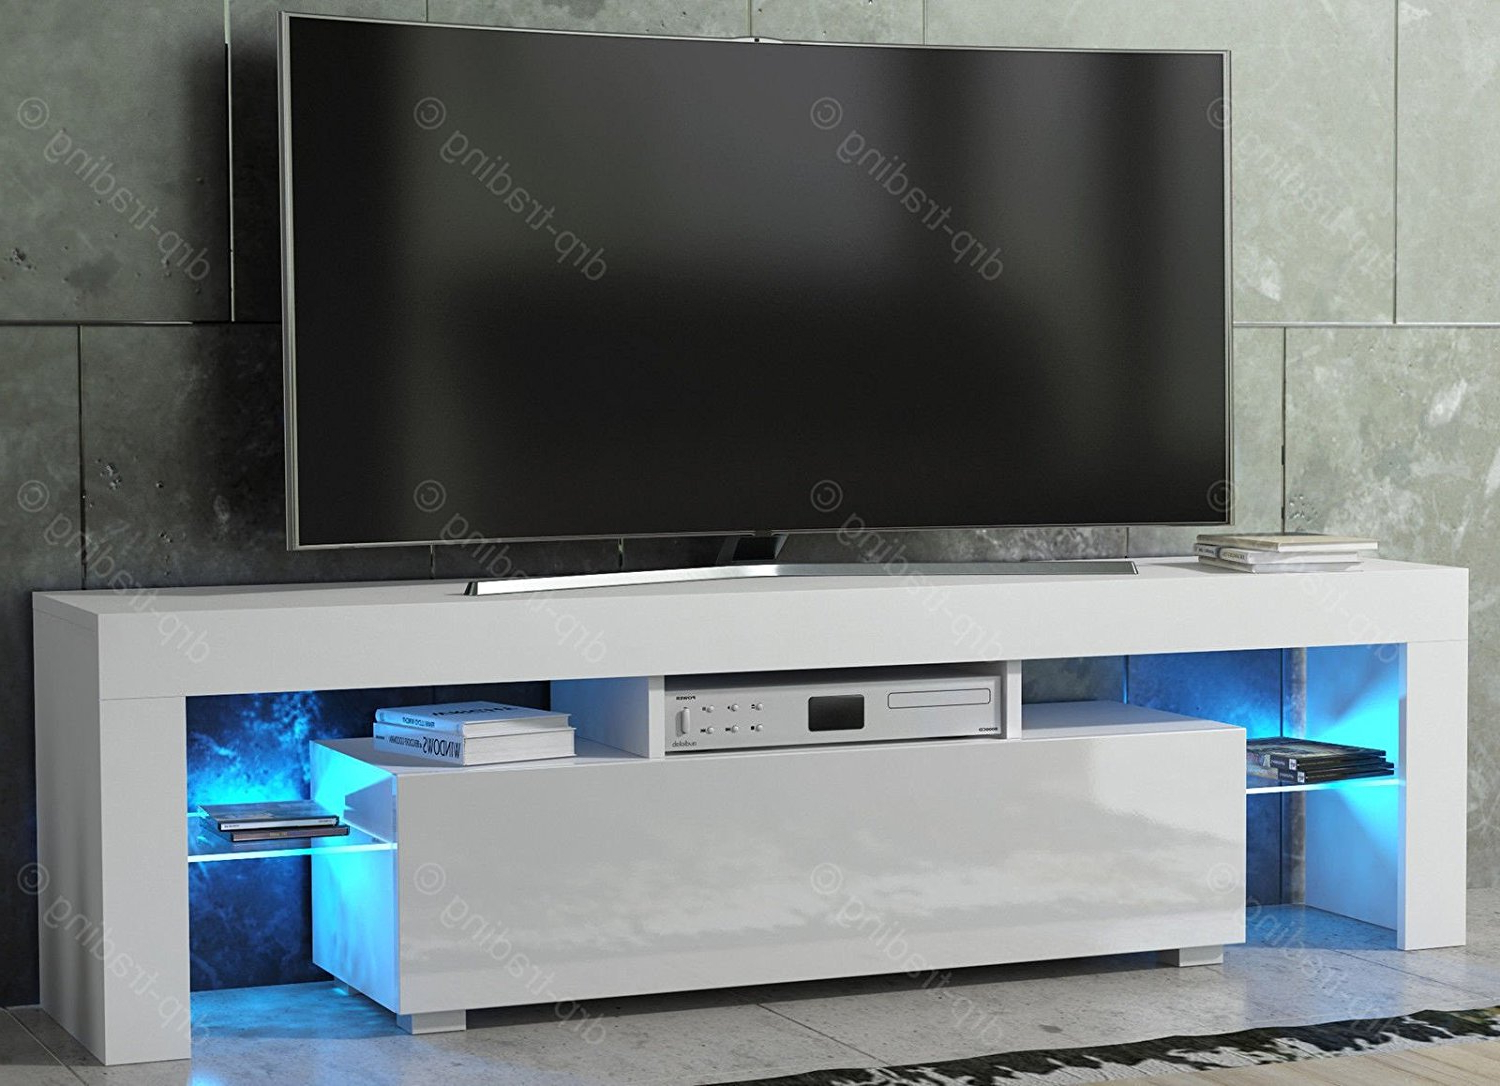 Famous Hot Sale !!! Modern Popular White High Gloss Lcd Mdf Tv Stand – Buy With Regard To White High Gloss Tv Stands (View 8 of 20)